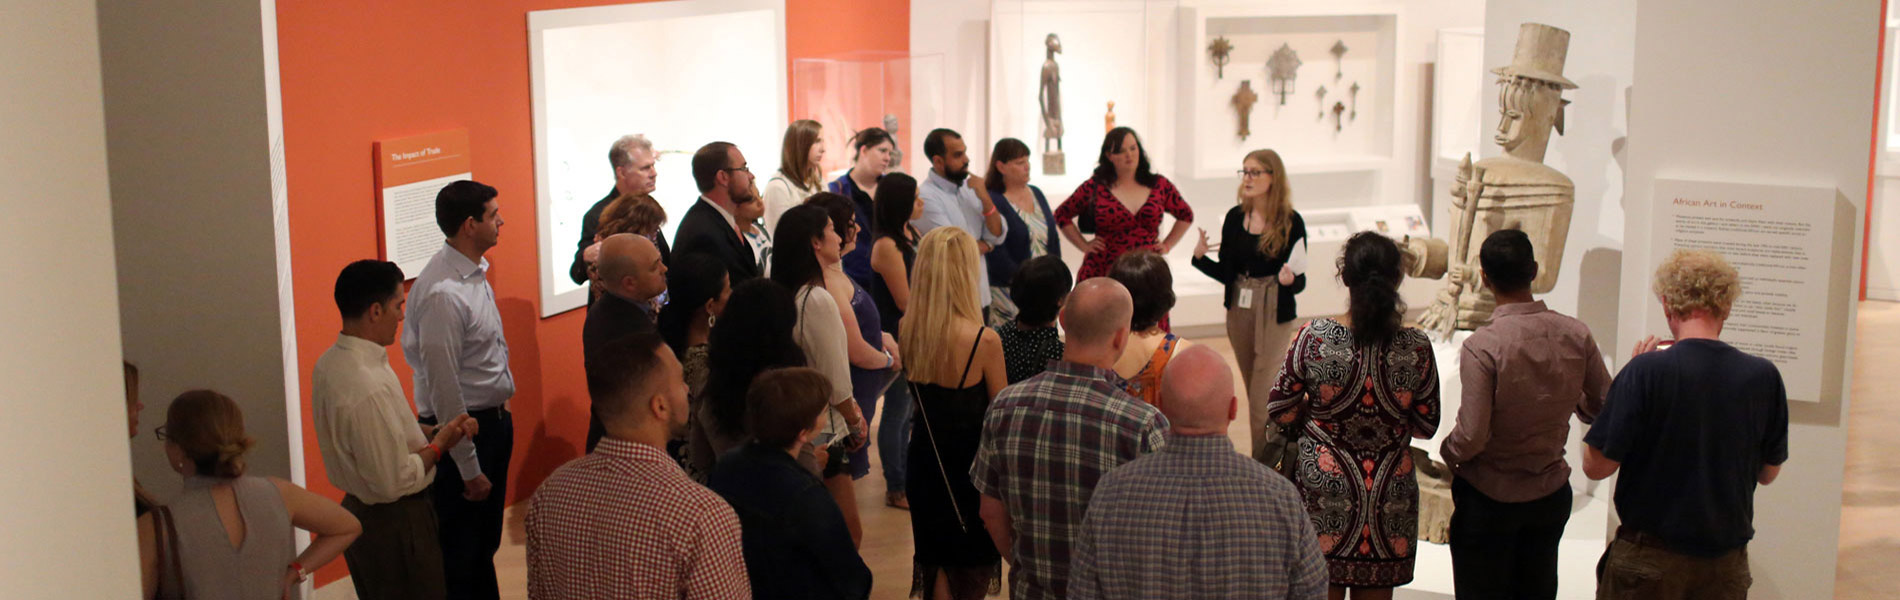 Visitors in a museum gallery listening to a talk led by an art educator